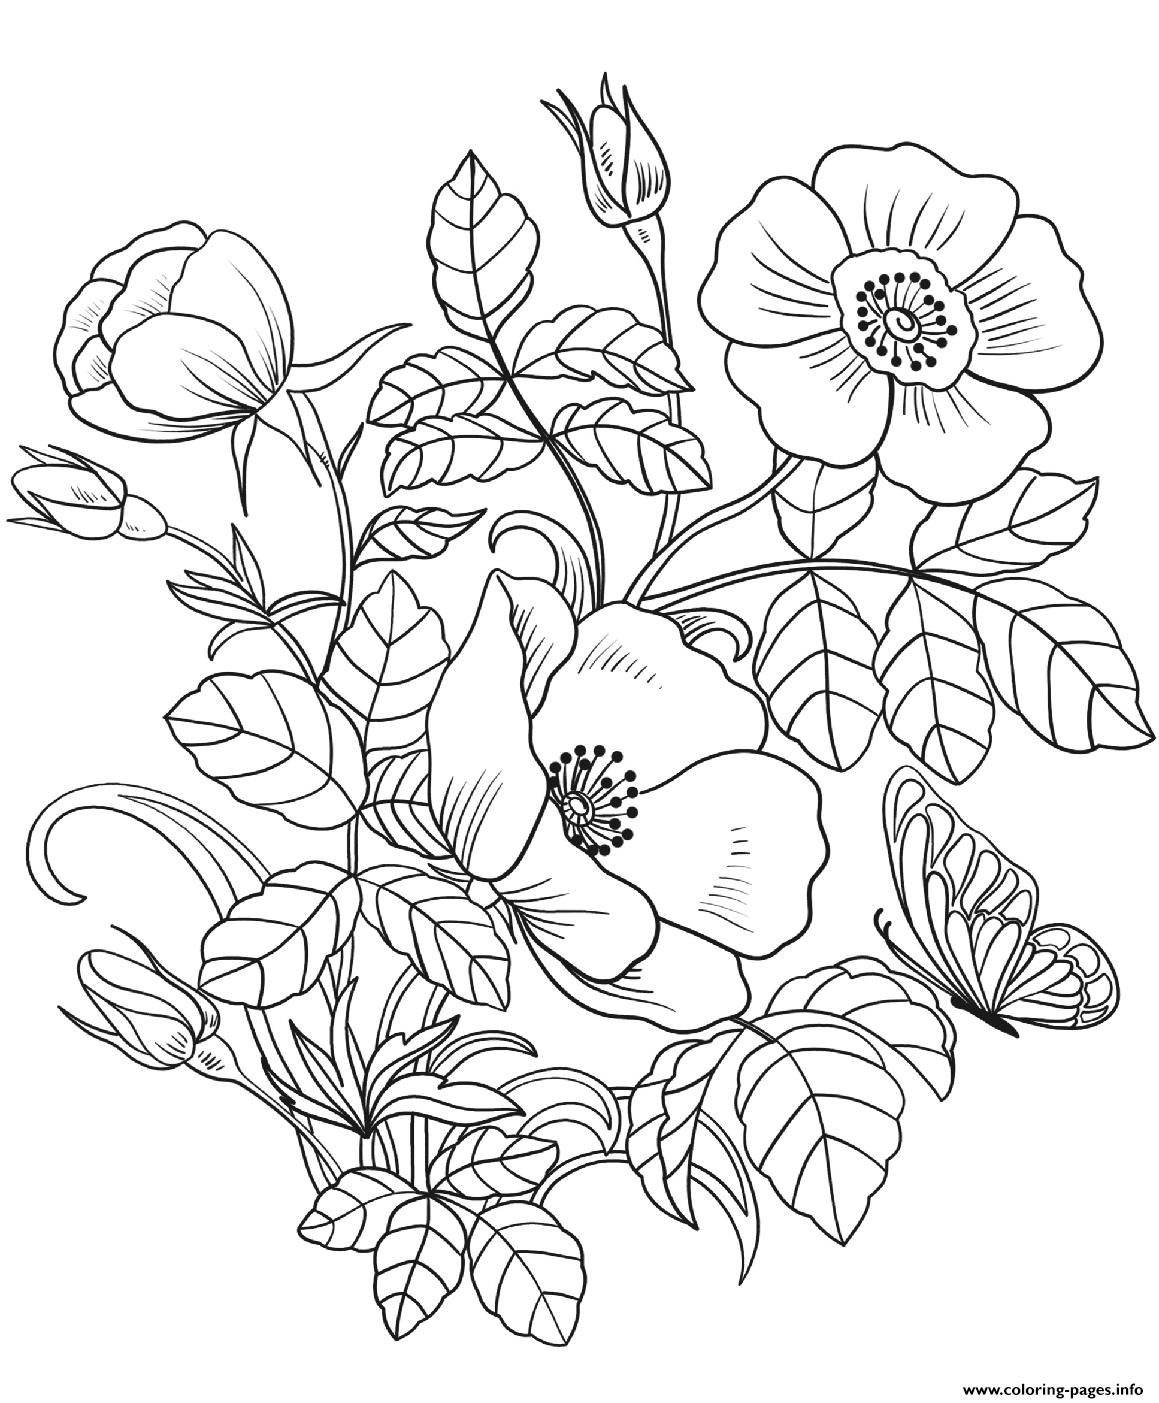 coloring pages of flowers free easy to print flower coloring pages tulamama of coloring flowers pages